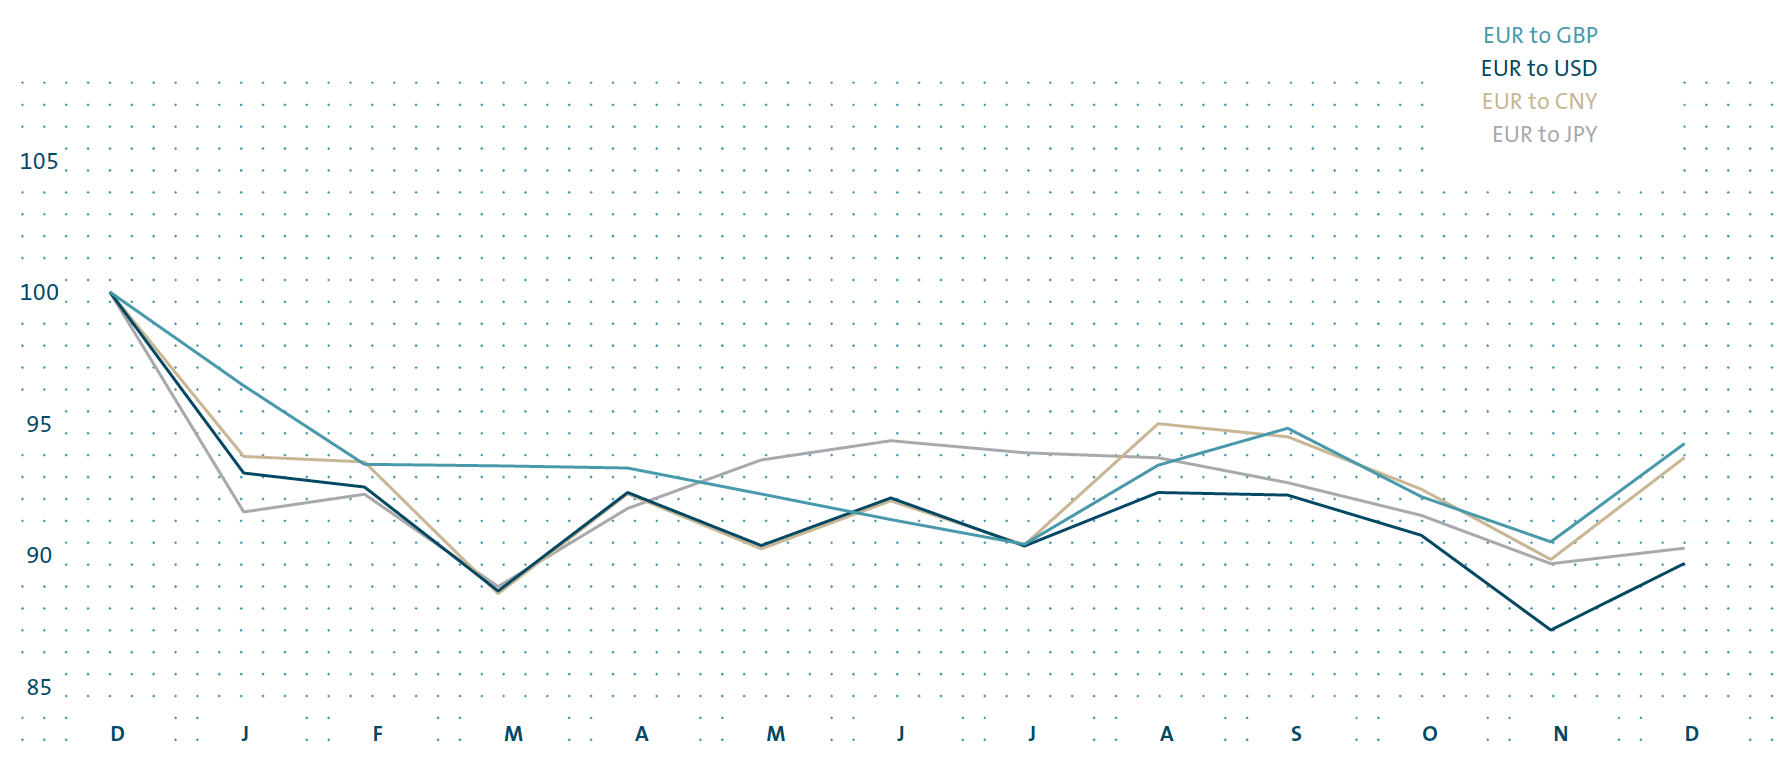 Exchange rate movements from December 2014 to December 2015 (line chart)